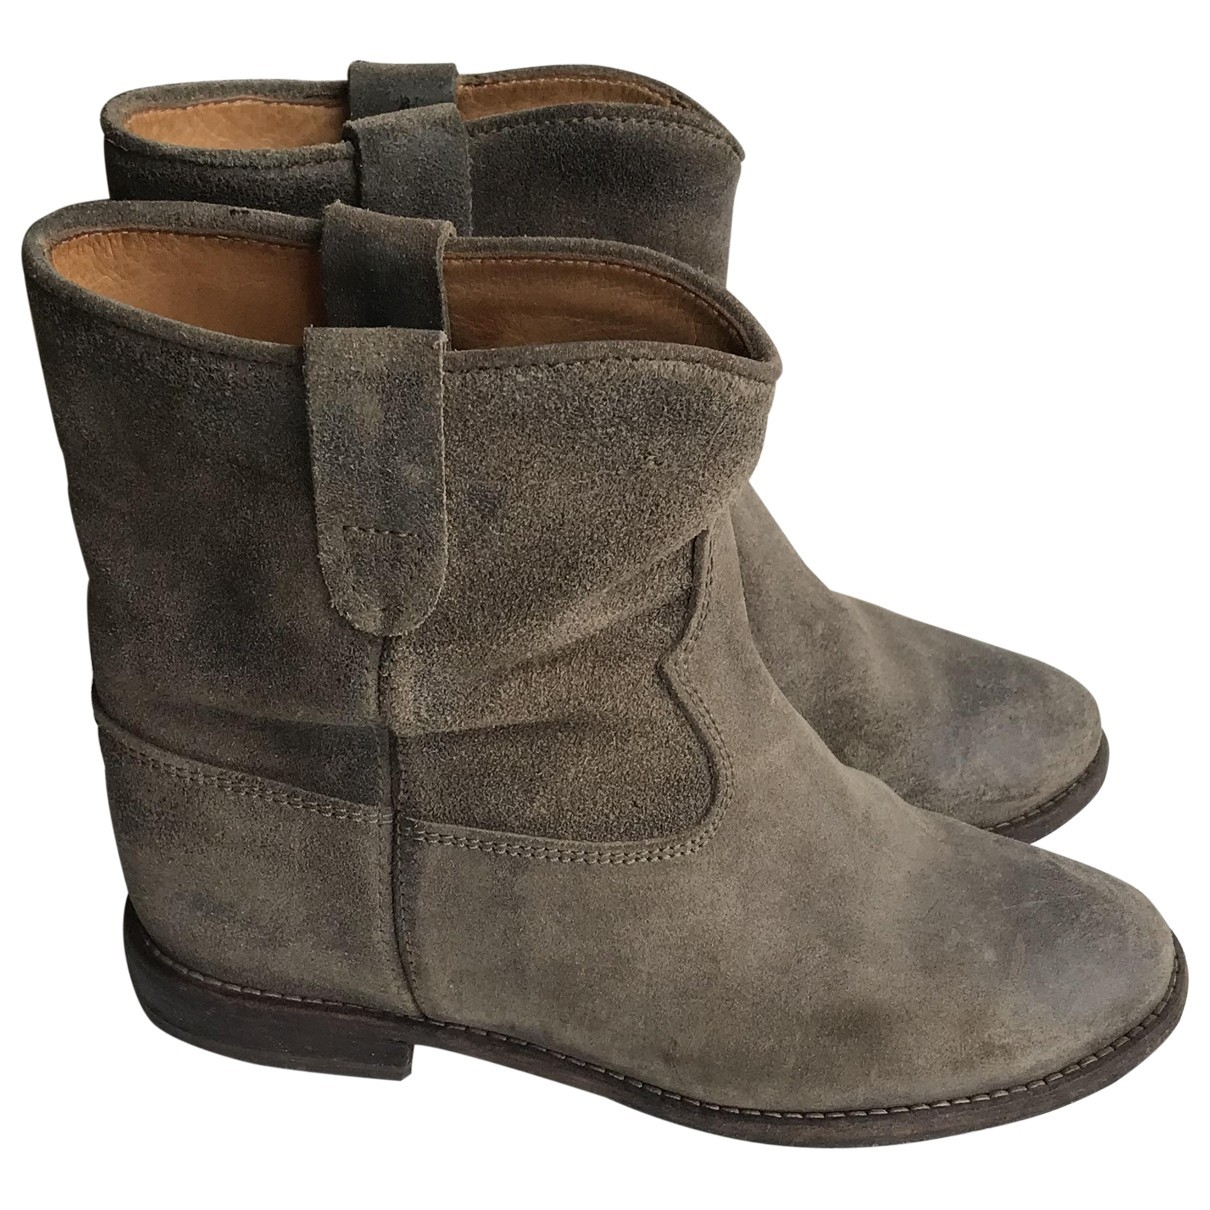 Isabel Marant Crisi  Brown Suede Ankle boots for Women 37 EU